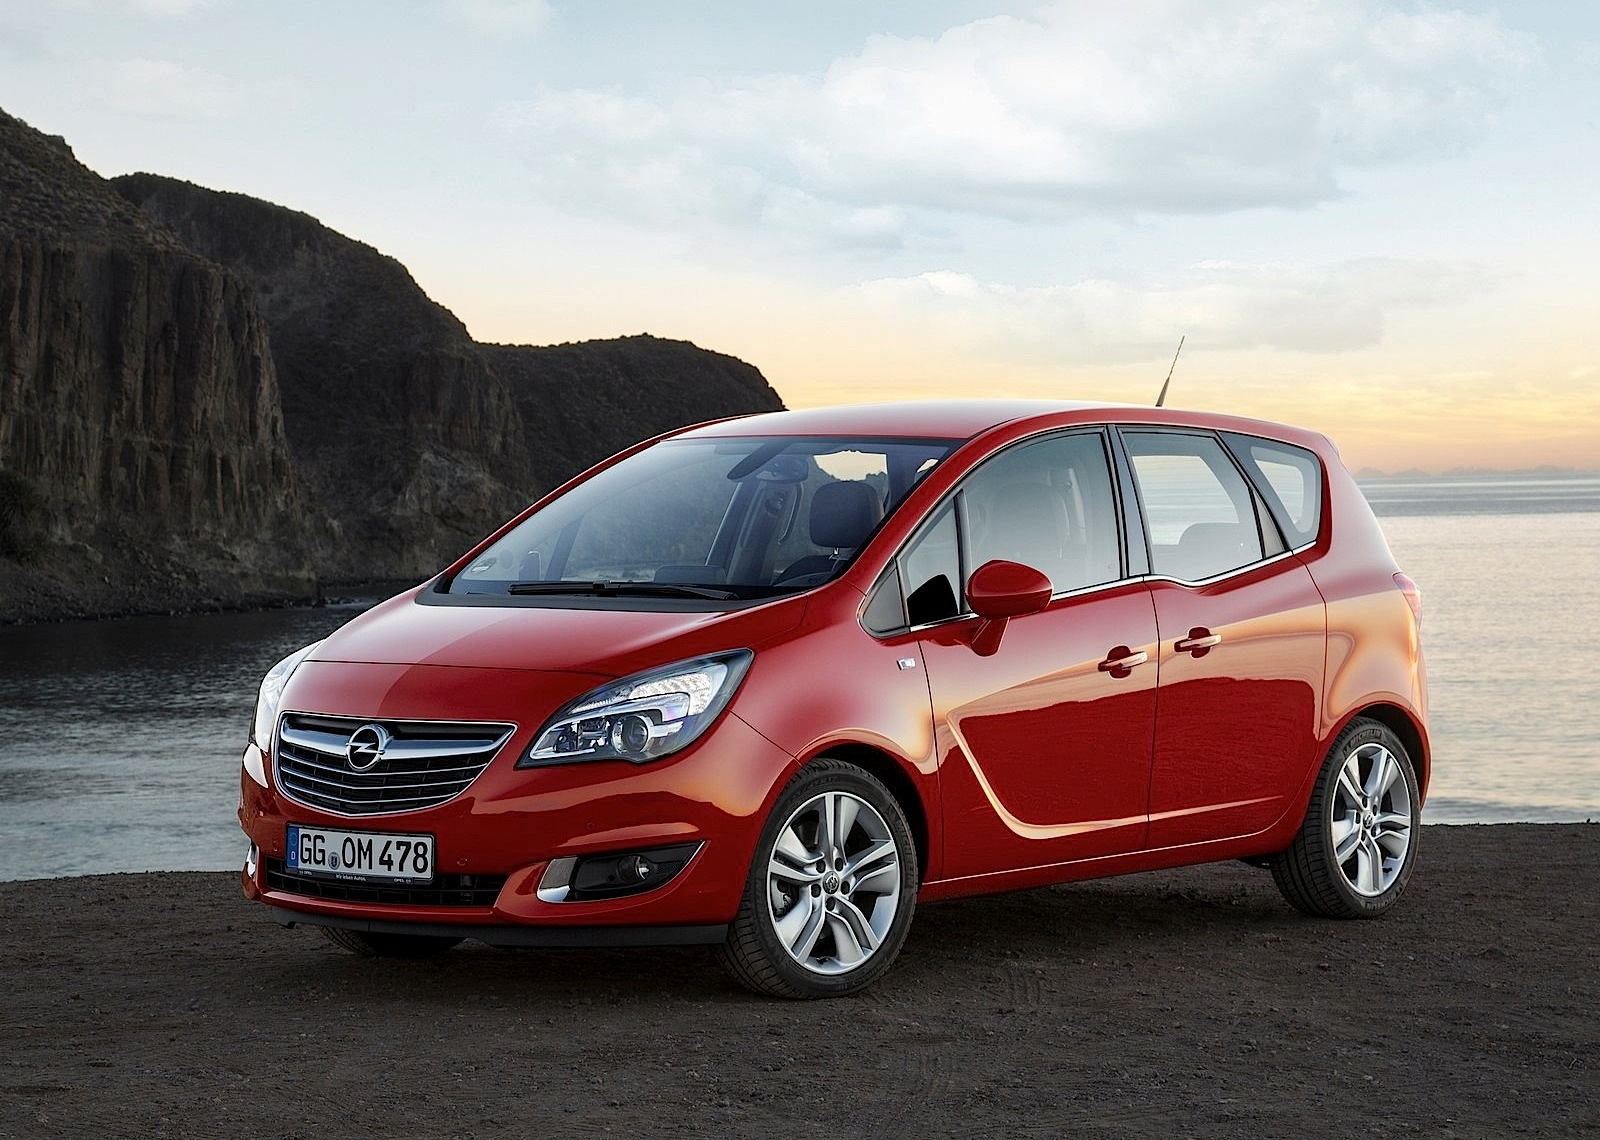 opel meriva specs 2014 2015 2016 2017 autoevolution. Black Bedroom Furniture Sets. Home Design Ideas